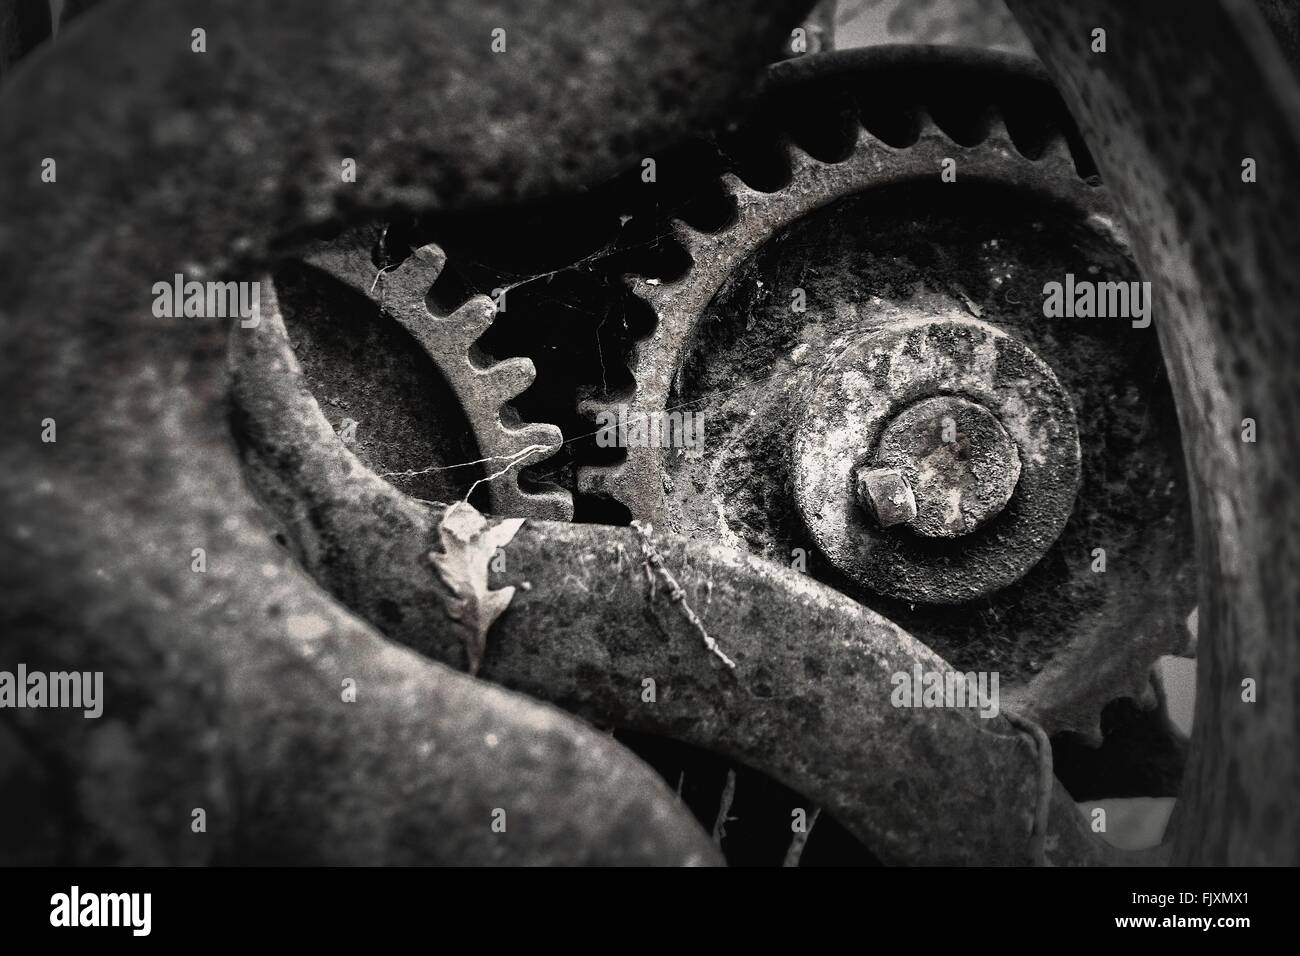 Close-Up Of Rusty Abandoned Machine Part - Stock Image